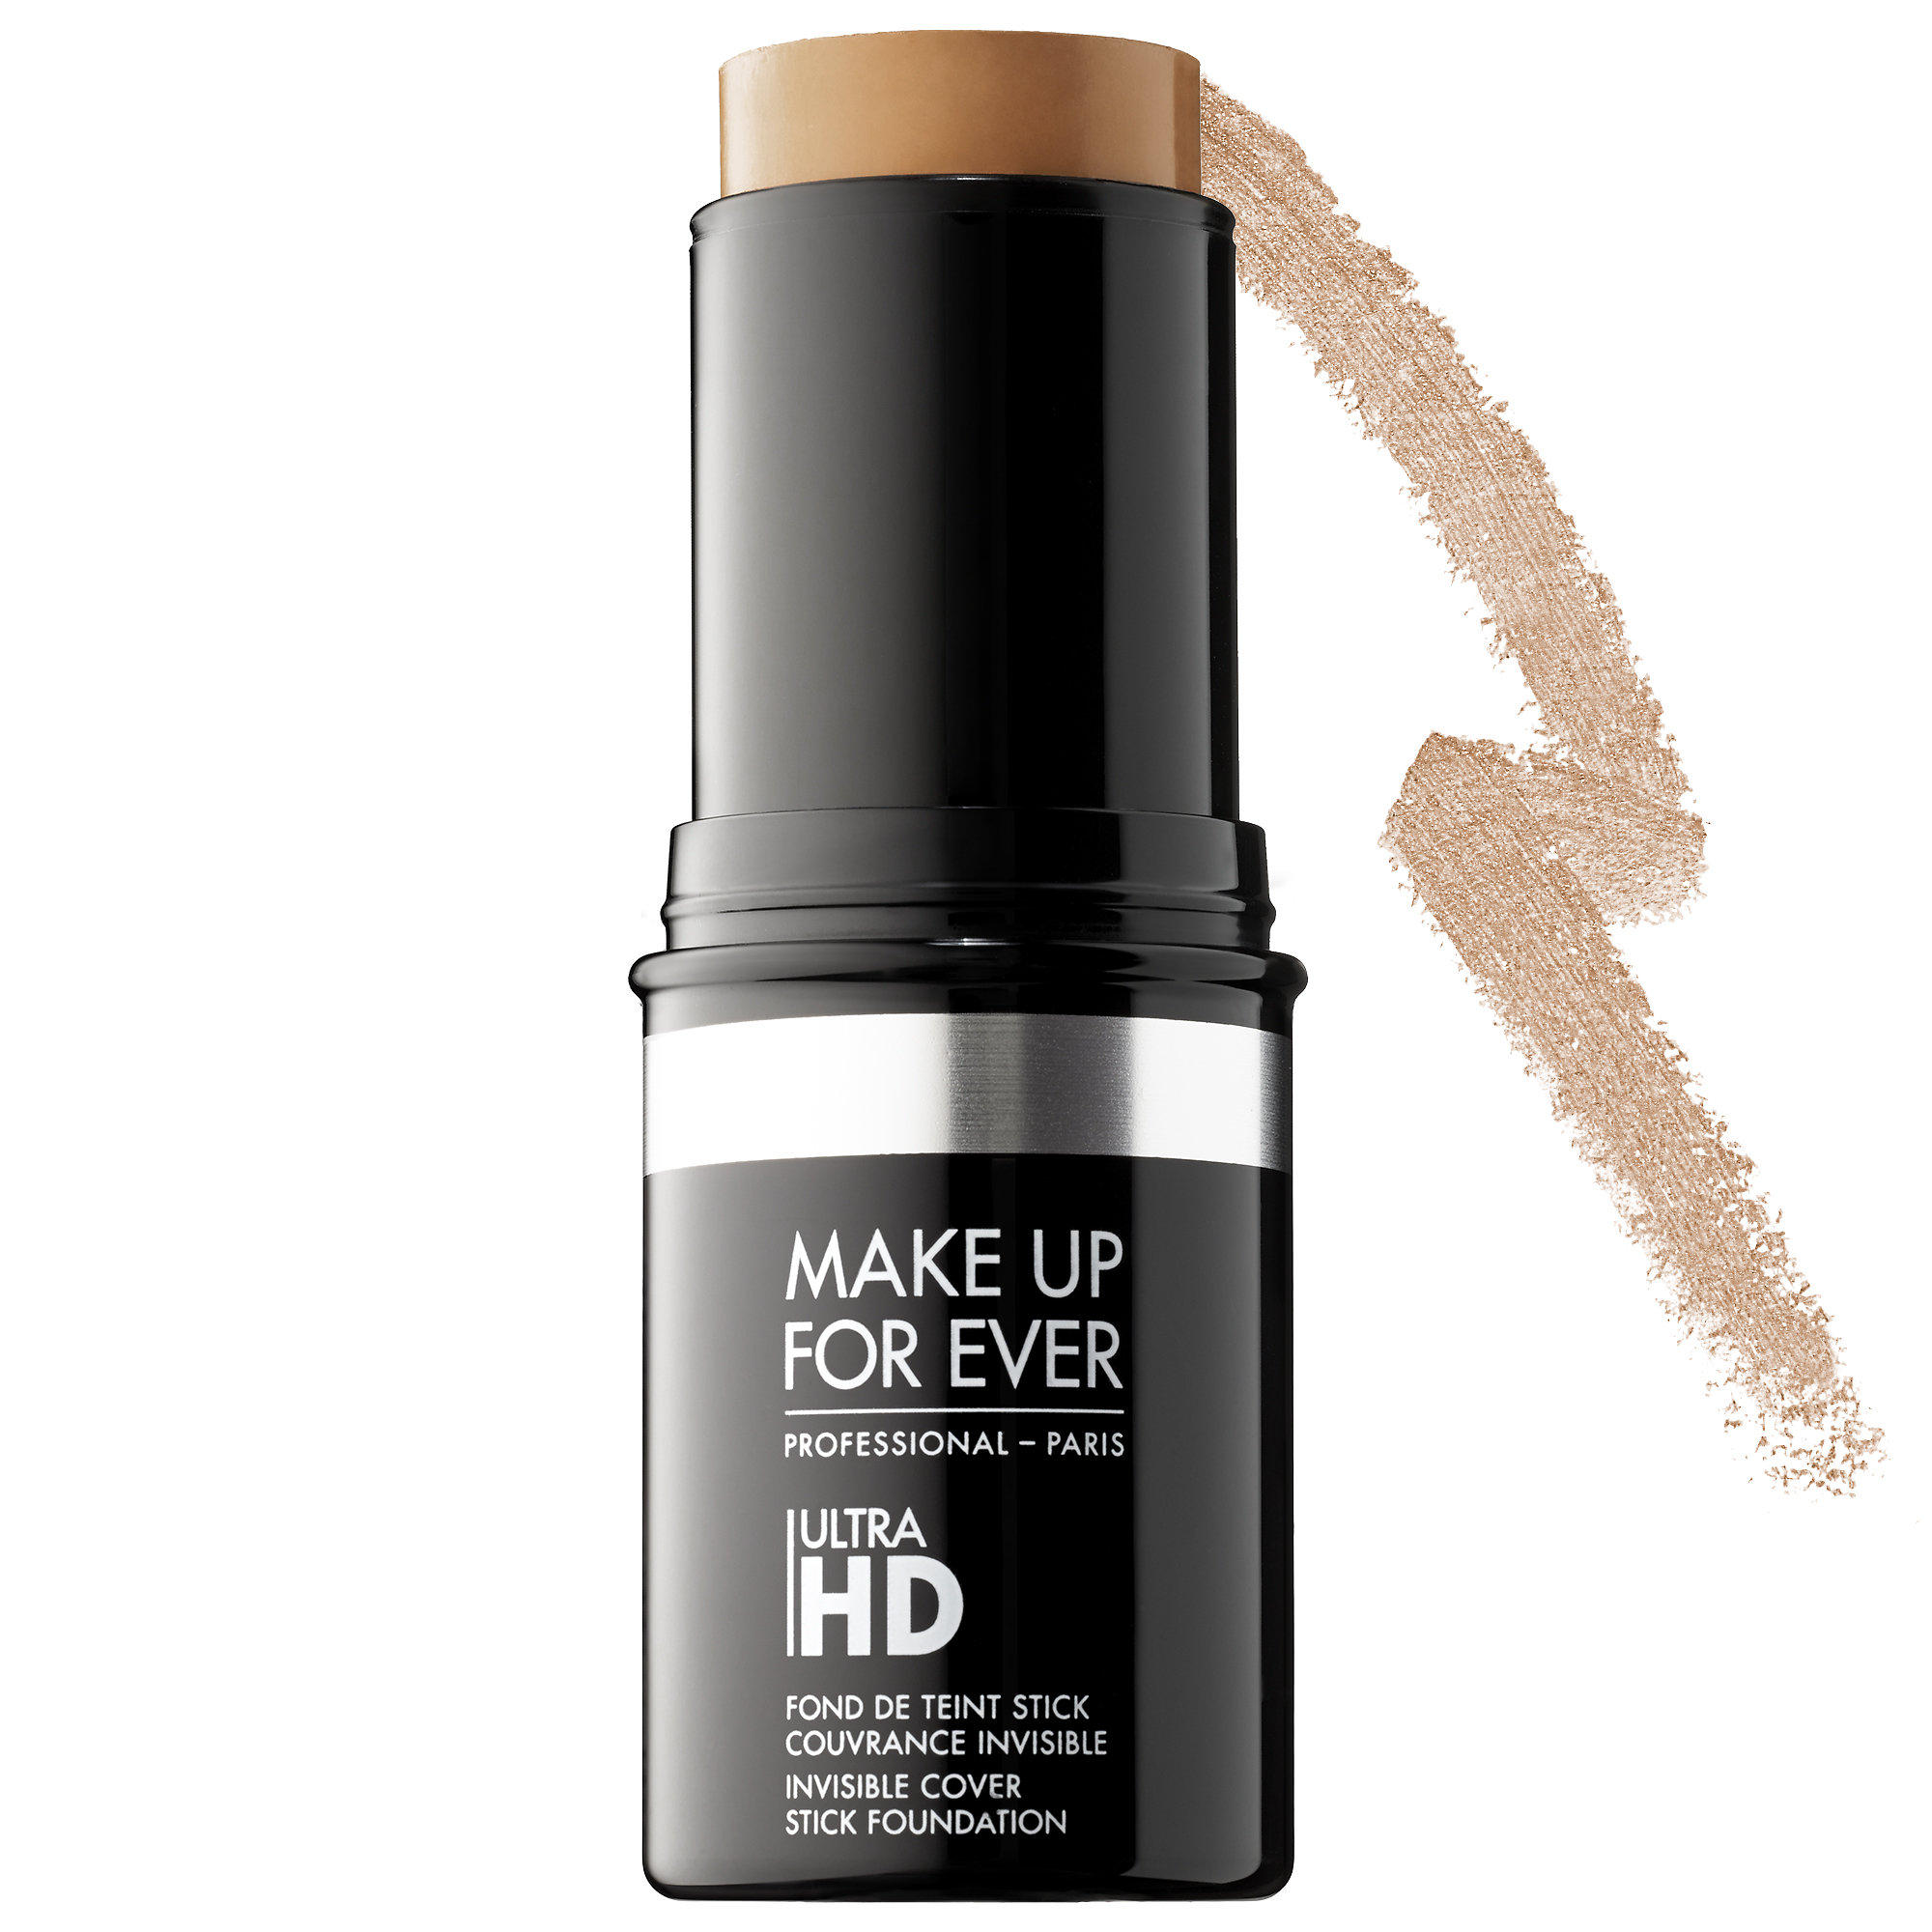 New ReleaseMakeup forever launched New Ultra HD Invisible Cover Stick Foundation